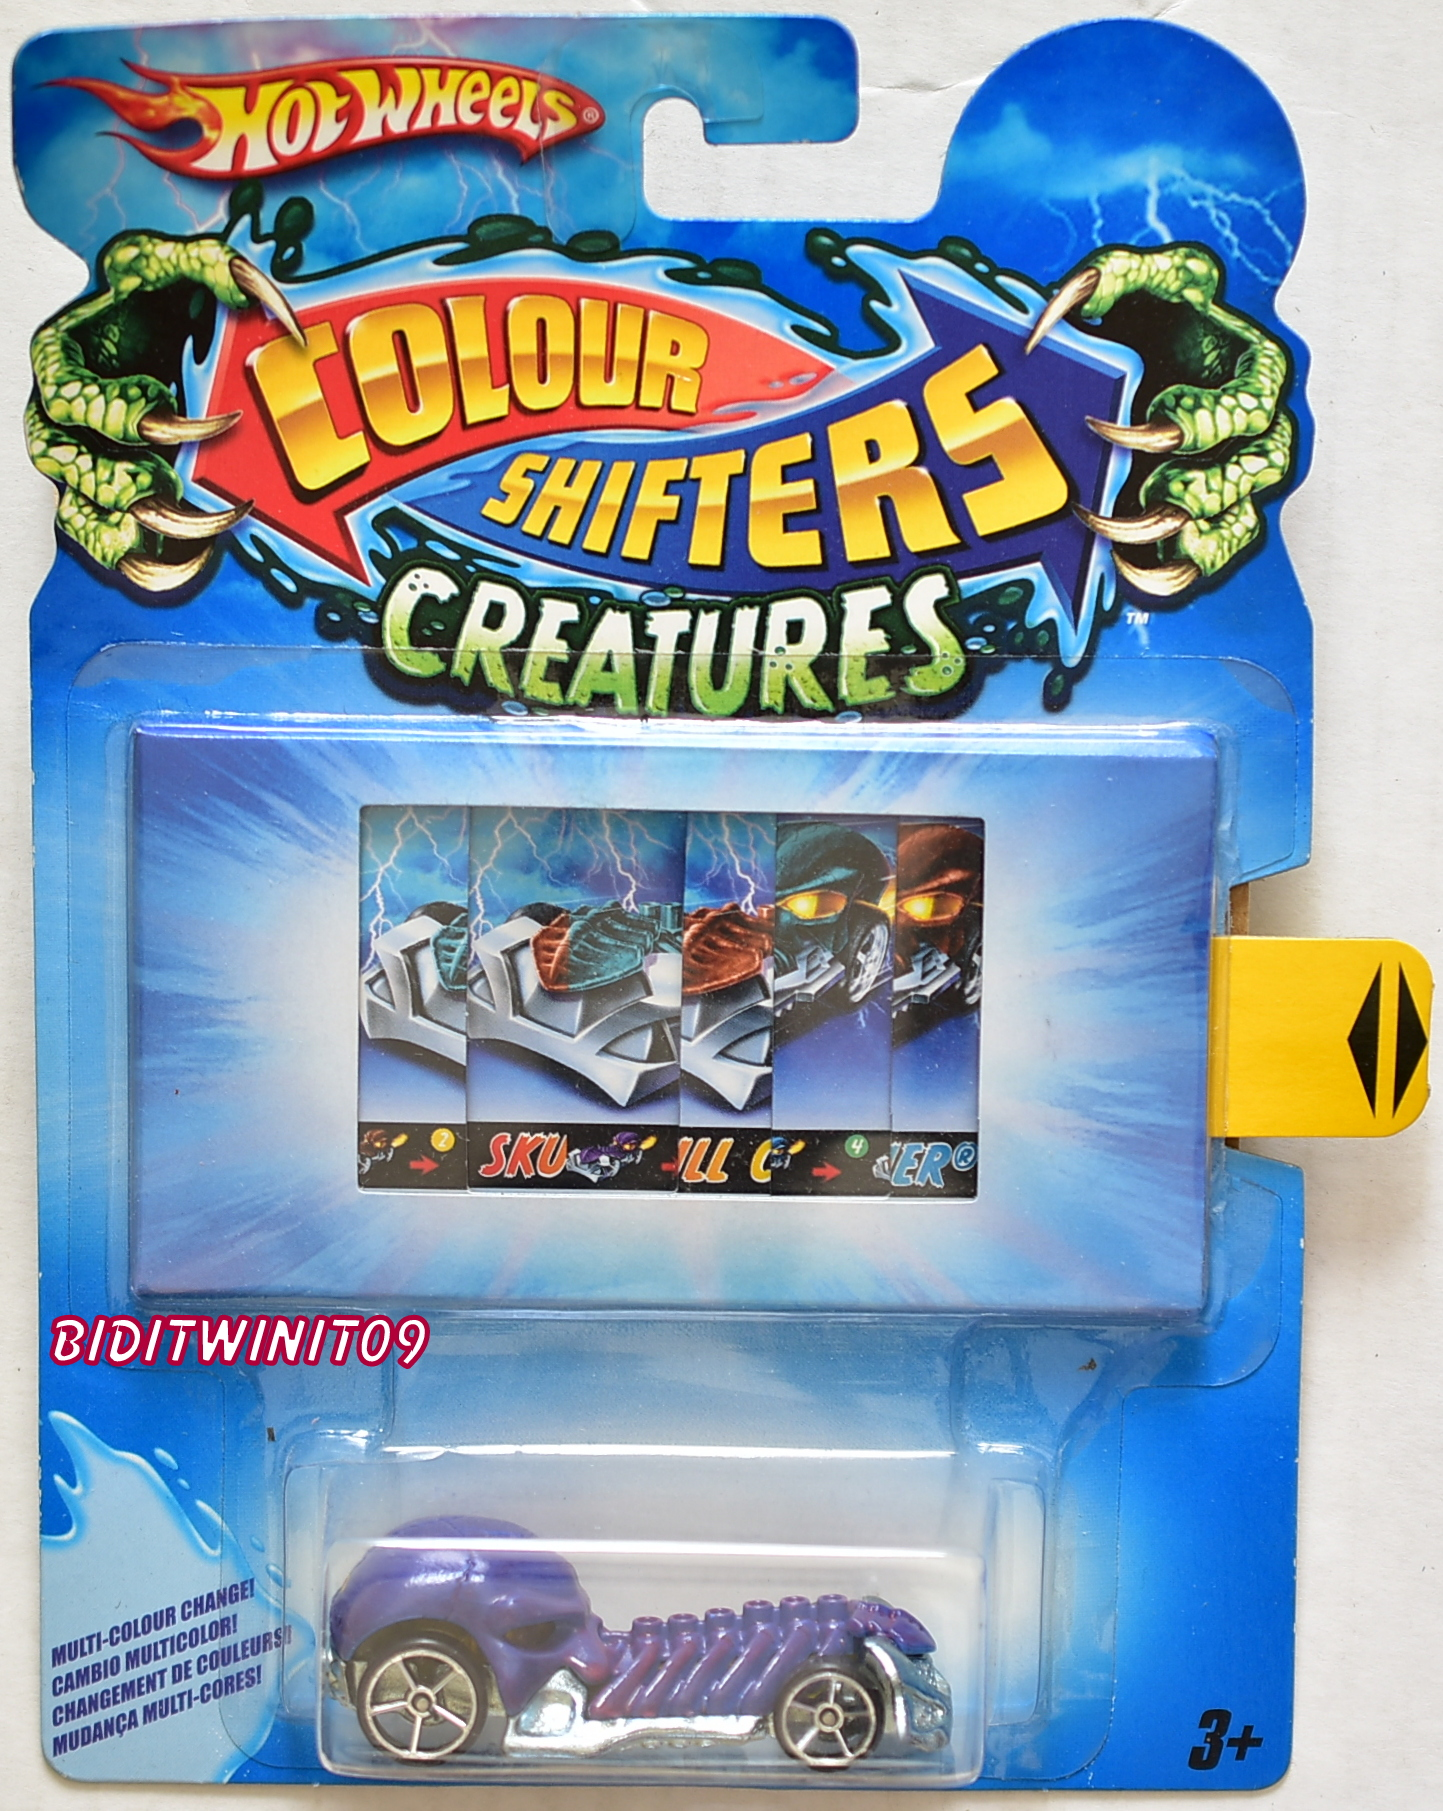 HOT WHEELS 2011 COLOR SHIFTERS CREATURES SKULL CRUSHER E+